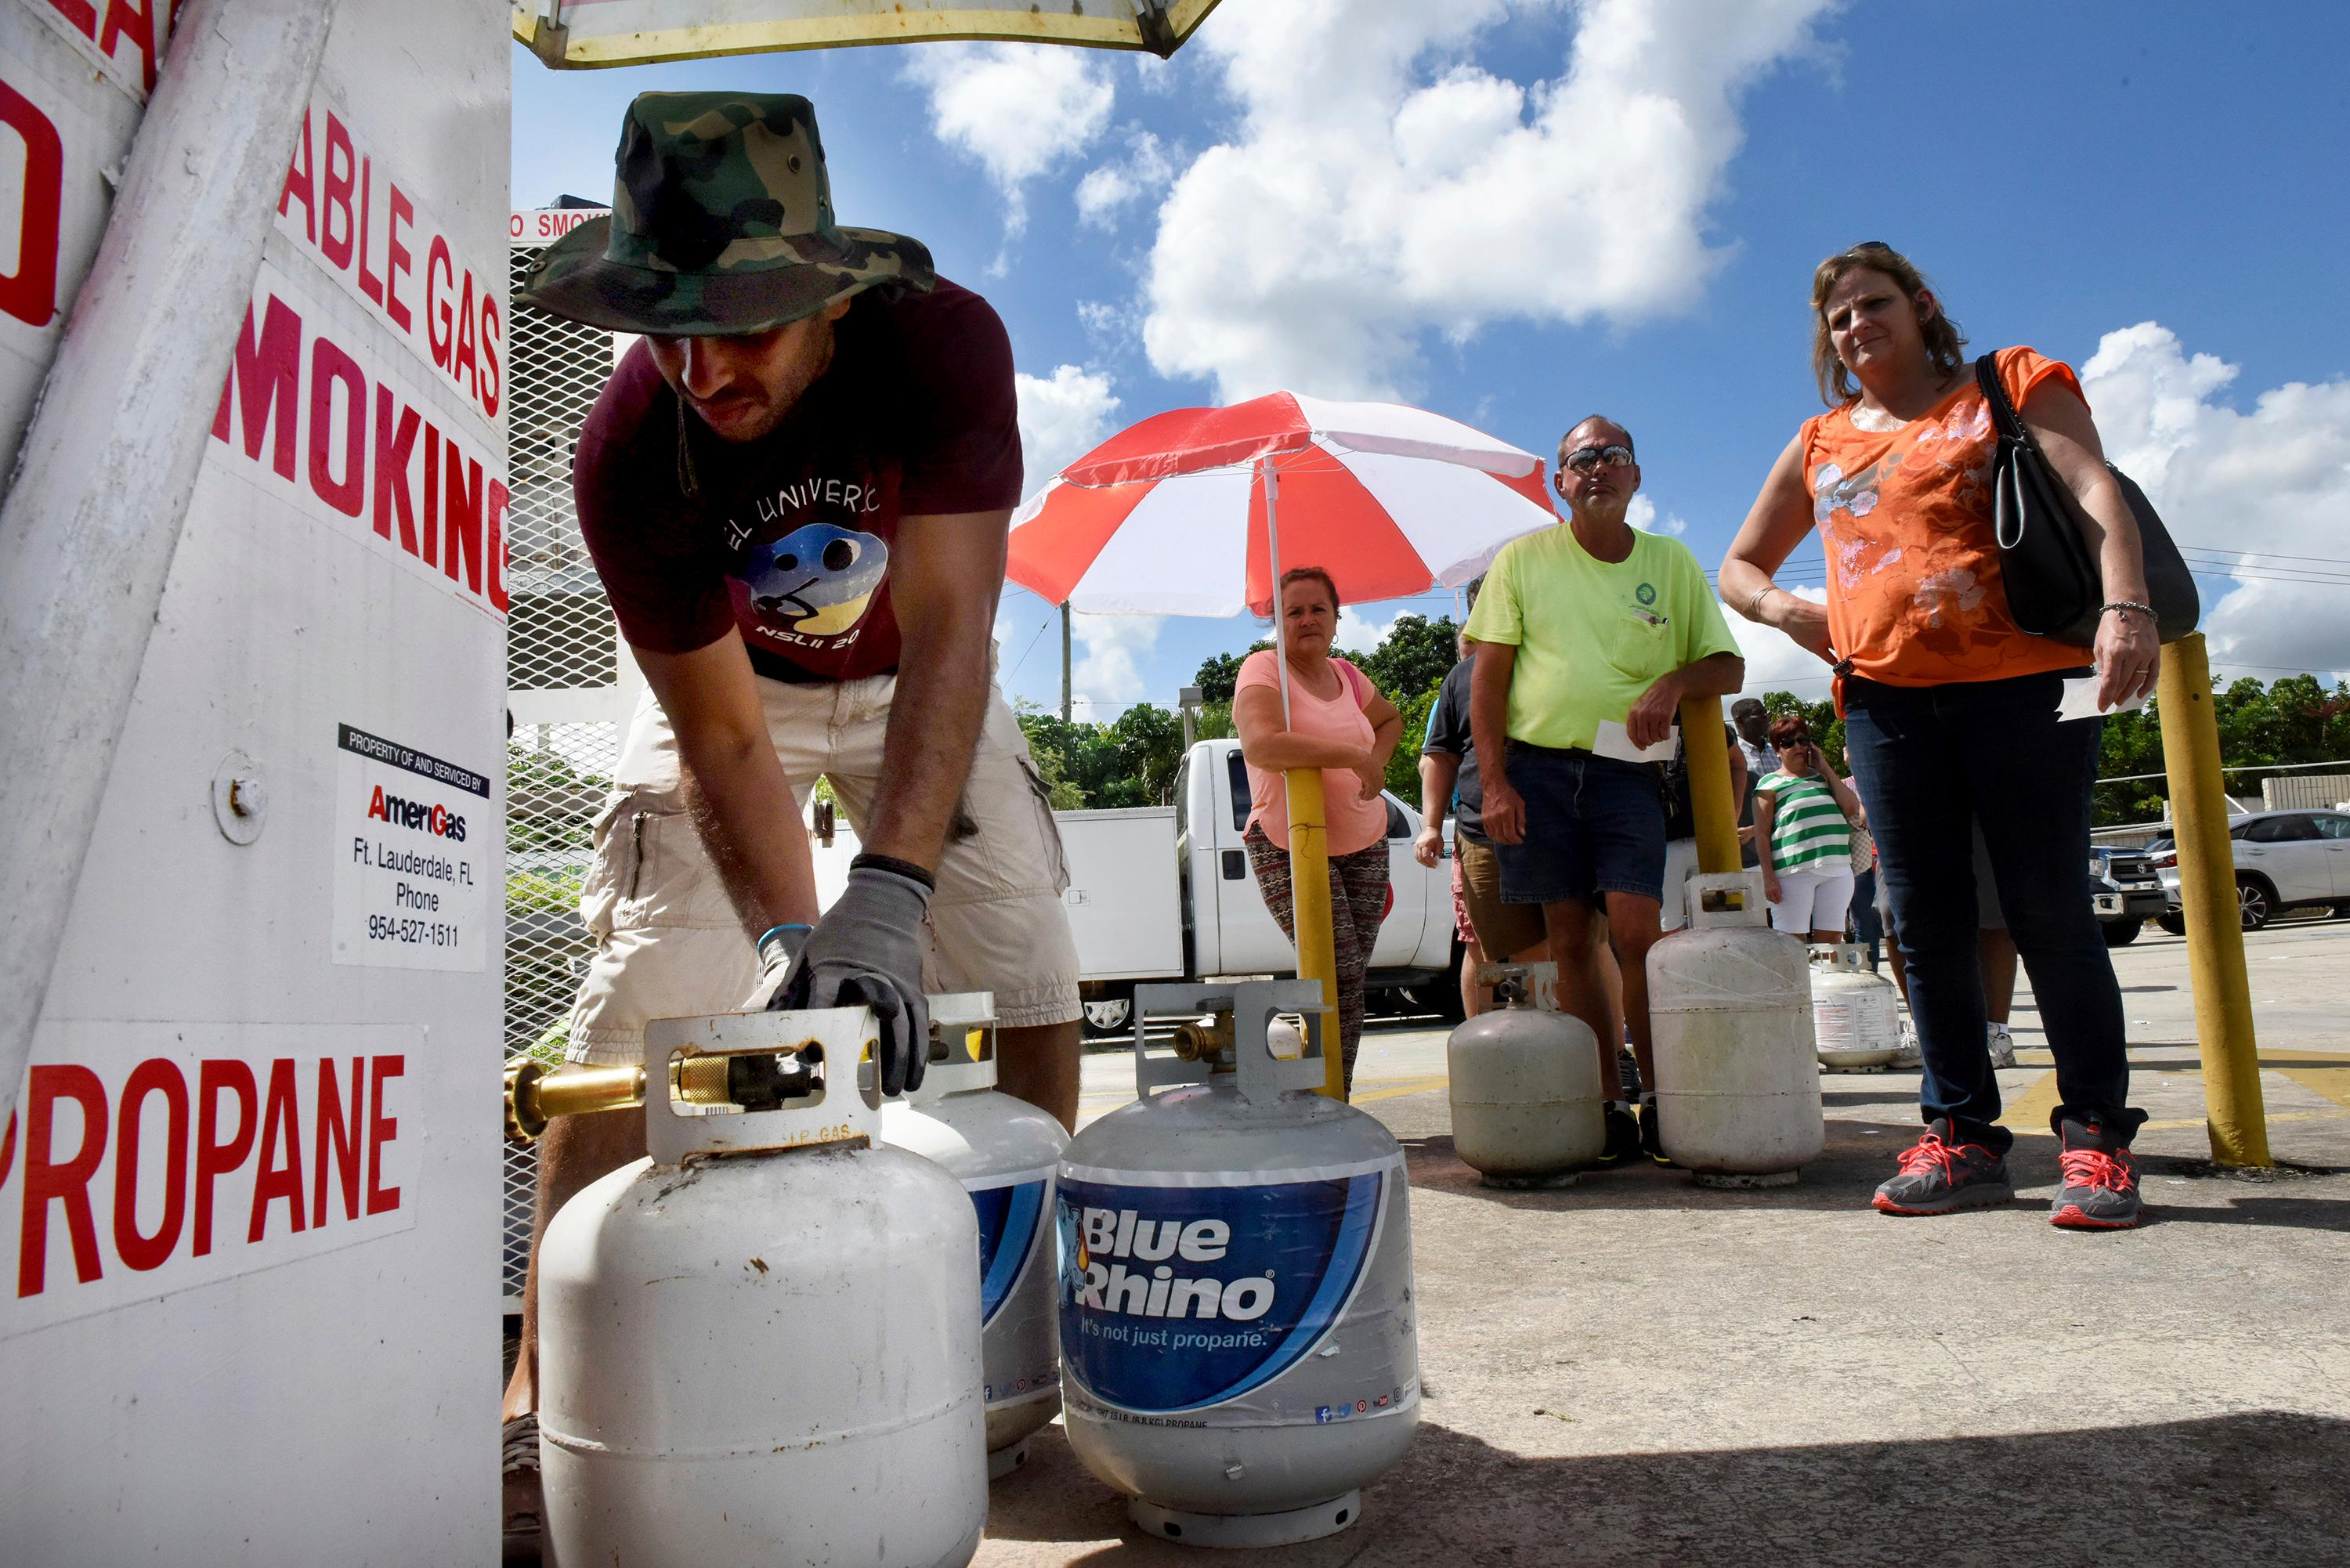 Gustavo Galindo, left, fills propane tanks at an Exxon gas station in Davie, Fla., Thursday, Sept. 7, 2017, as a long line of people wait in line as residents prepare for Hurricane Irma. (Taimy Alvarez/South Florida Sun-Sentinel via AP)